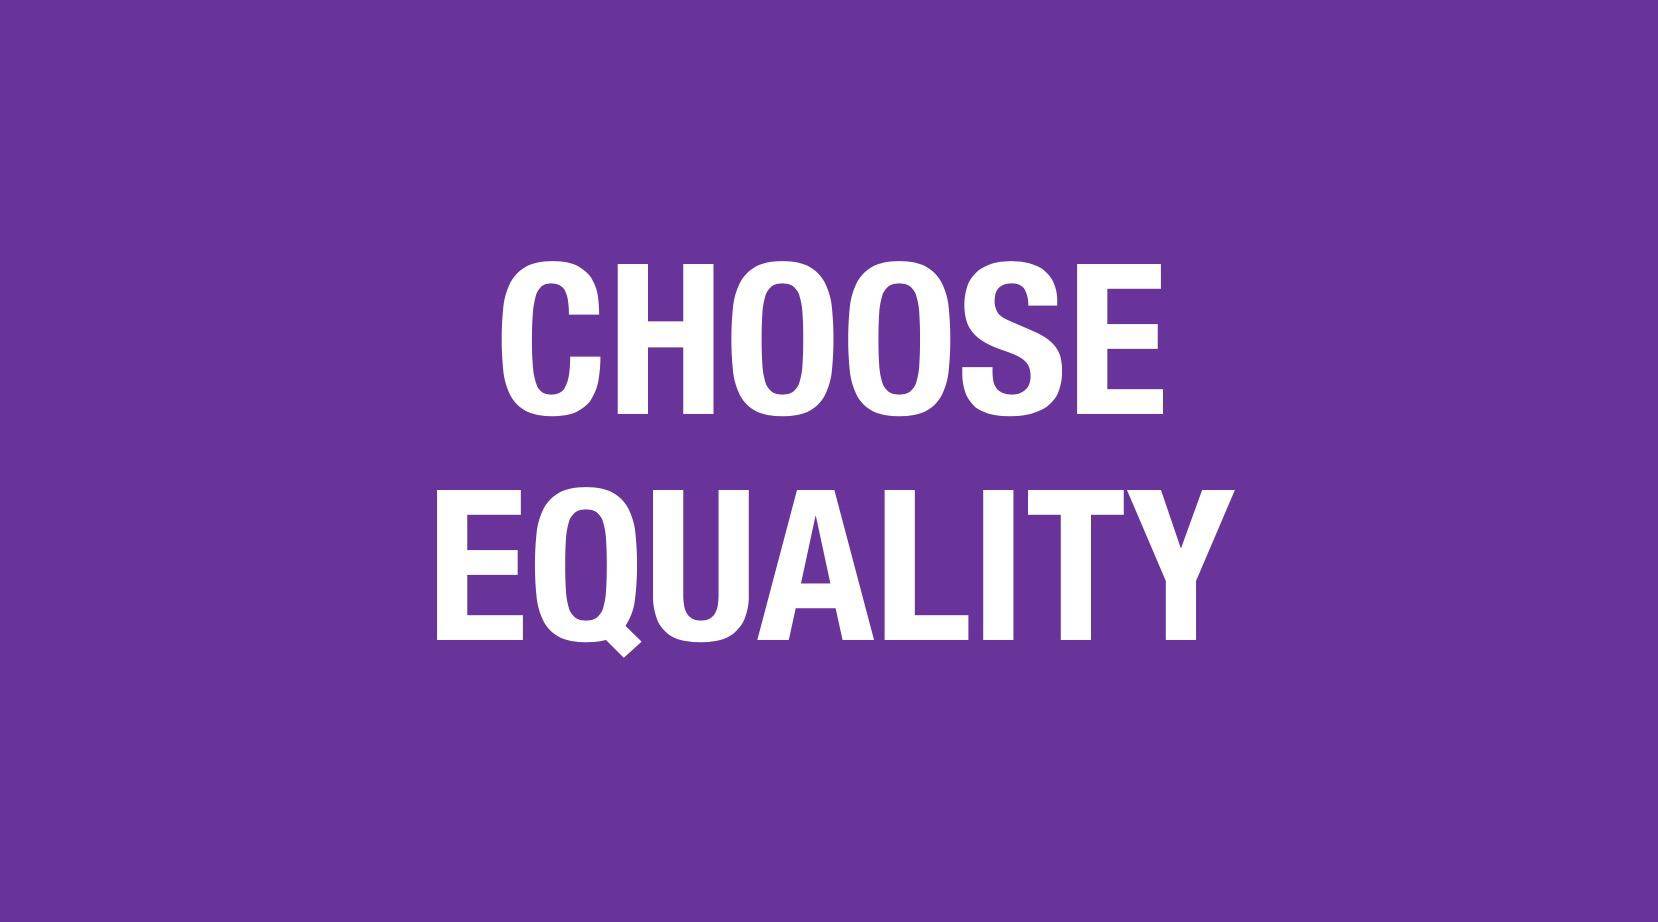 Purple background with the words choose equality in large white text